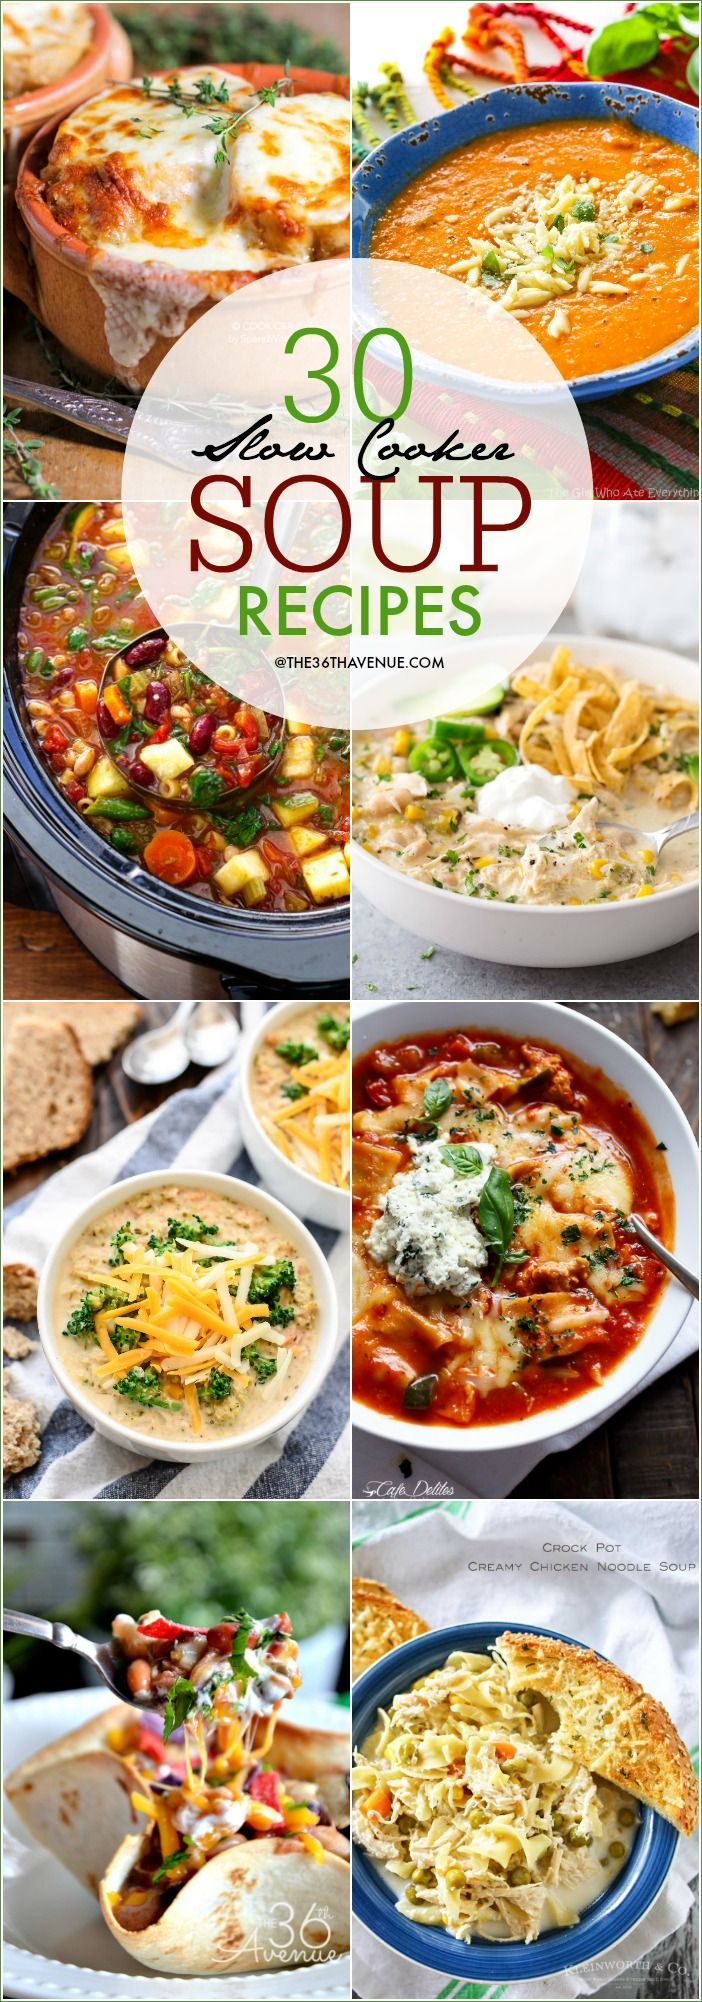 Slow Cooker Soup Recipes - Enjoy these easy and delicious soup recipes at The36thAvenue. Pin it now and make them later.